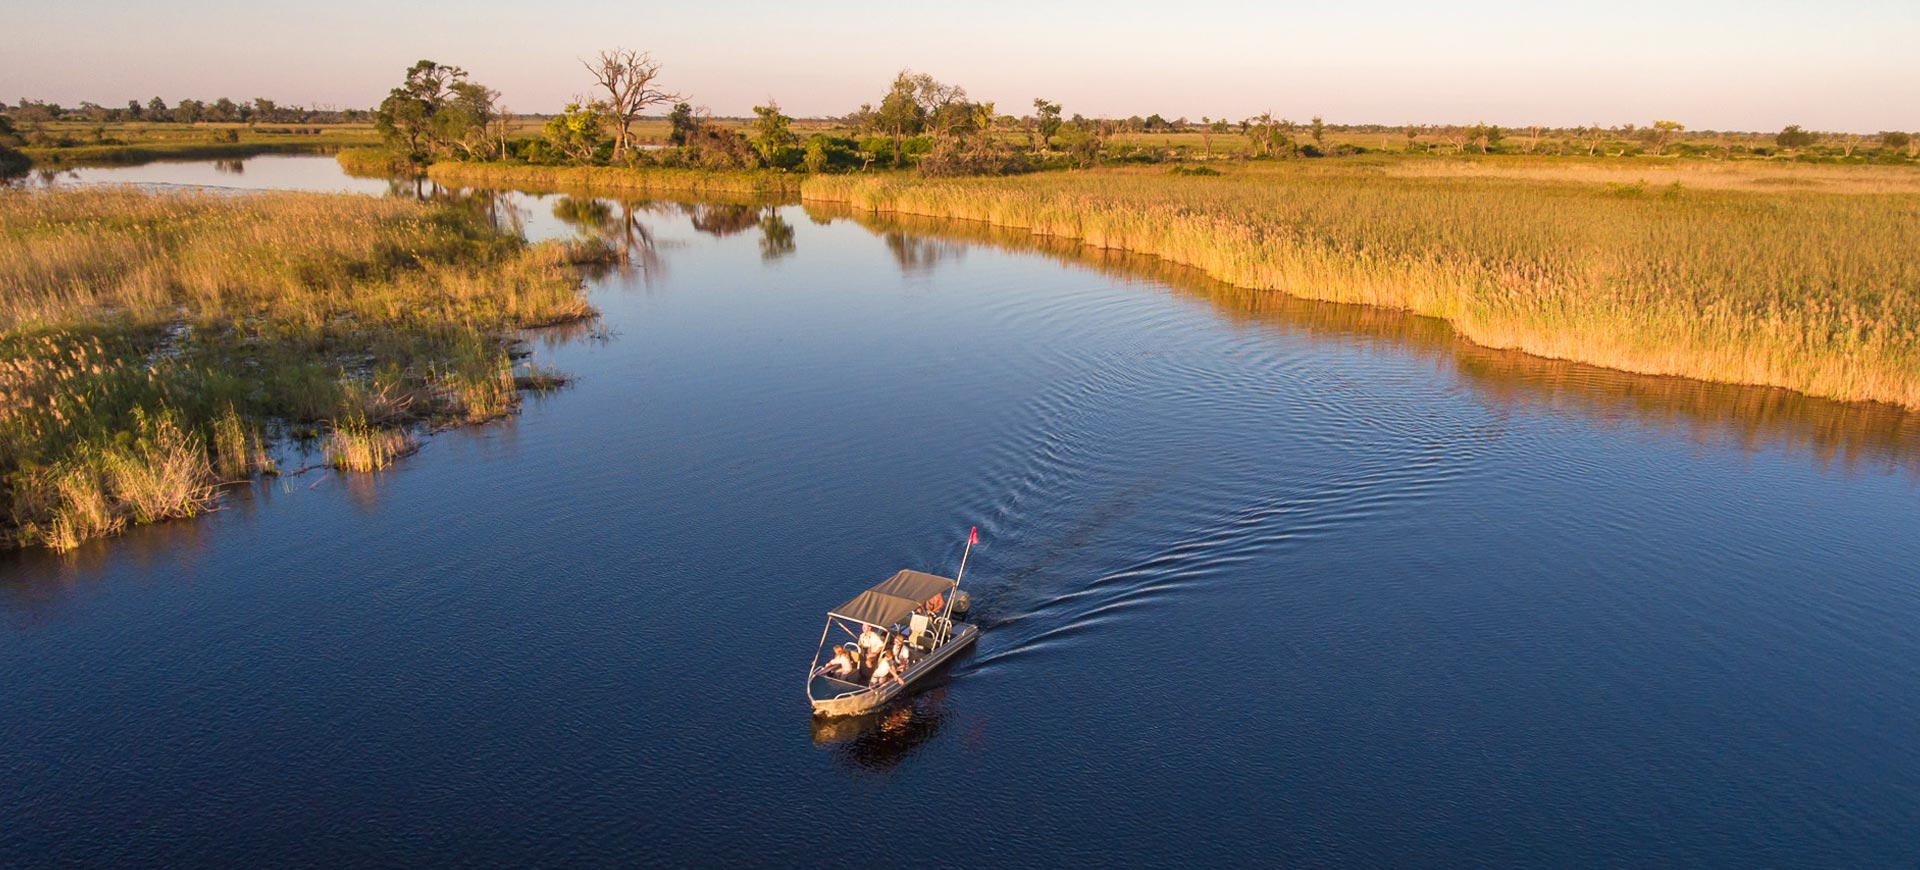 6 Night Okavango Delta & Moremi Safari Package | Conscious ...